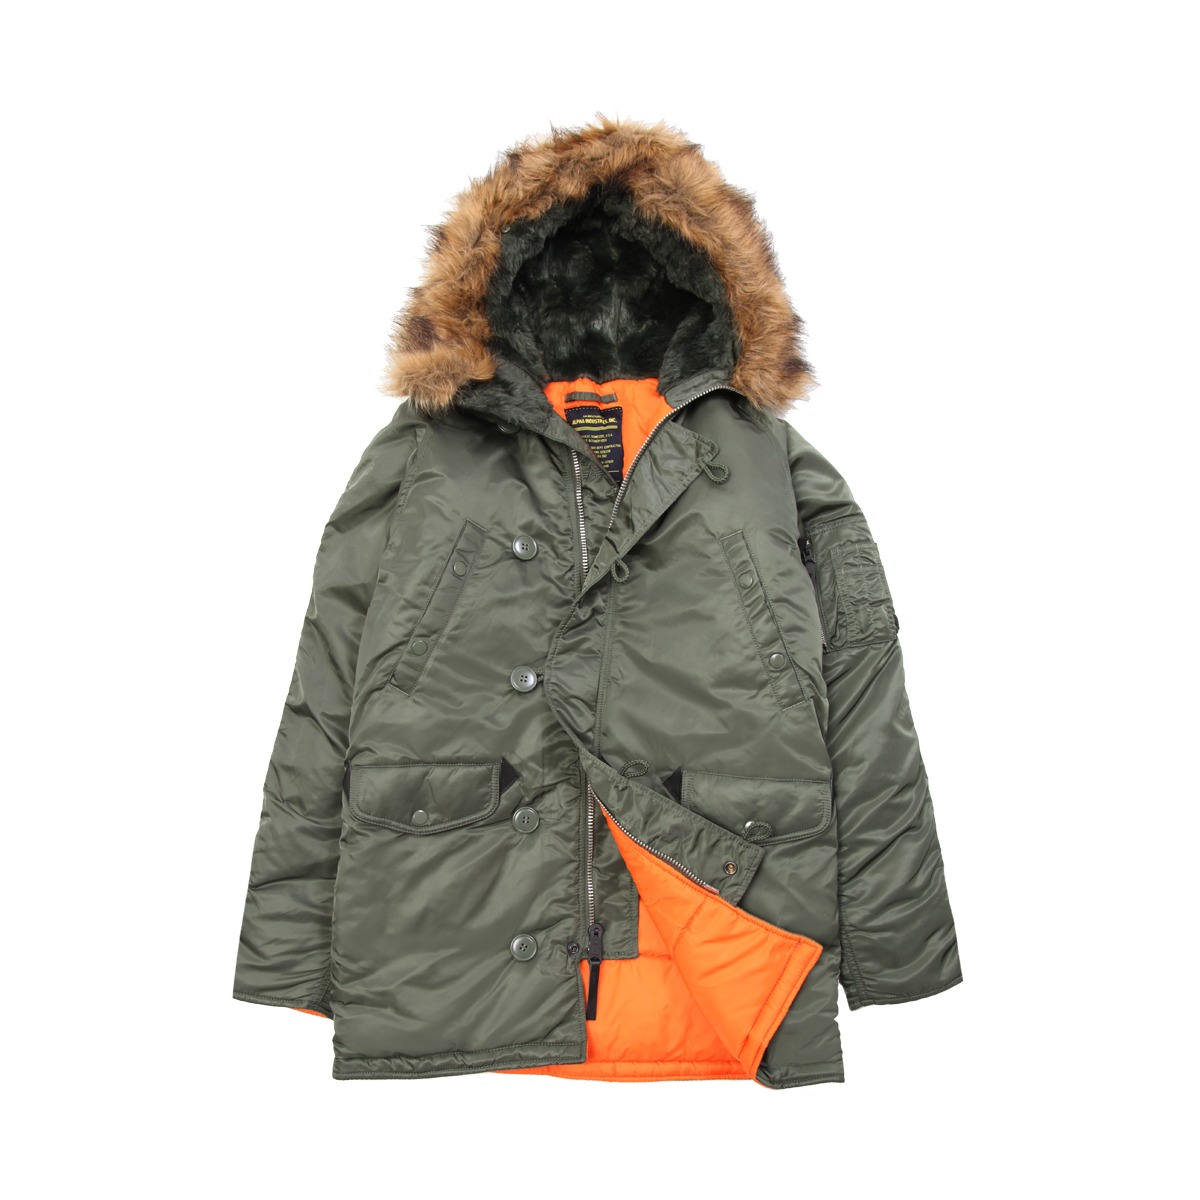 alpha industries N3B parka on effortless gent